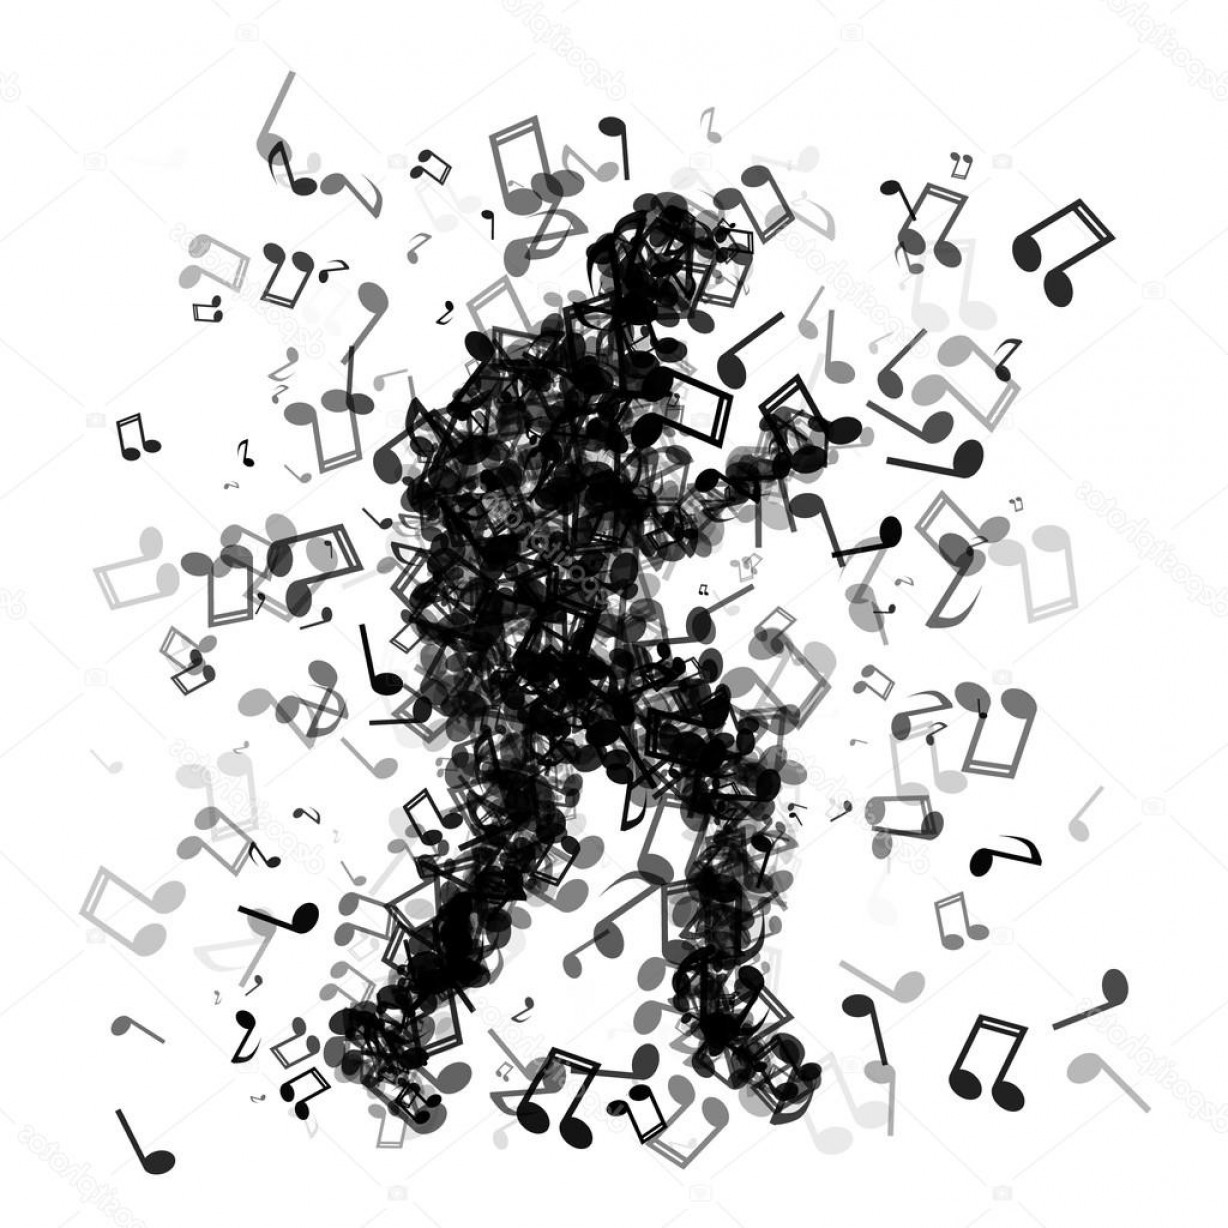 Dancing Musical Notes Vector: Stock Illustration Man Made Of Music Notes